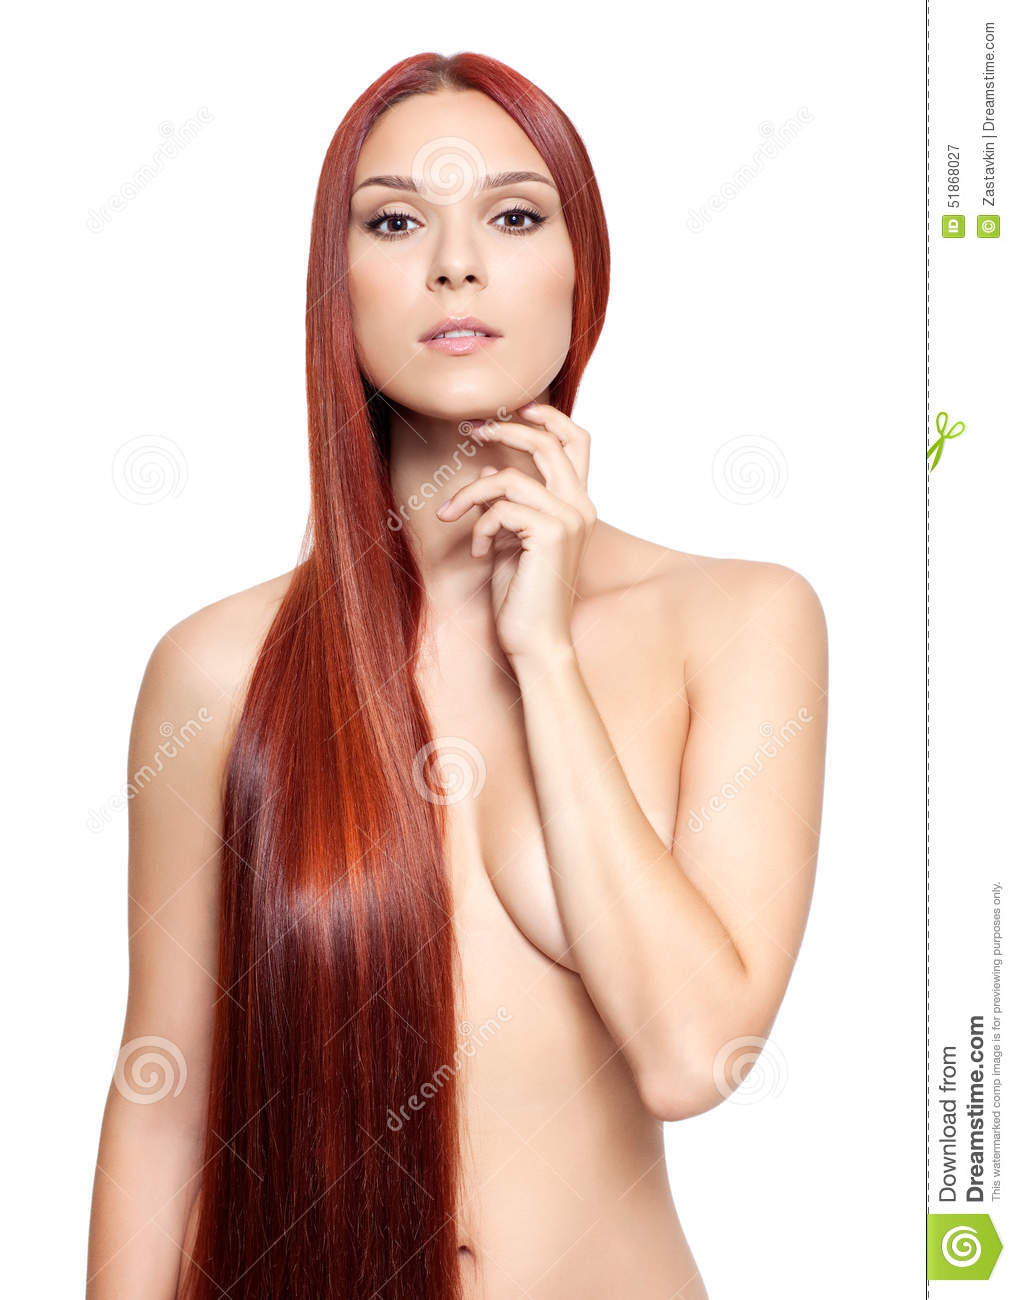 Red haired nude ladies apologise, but